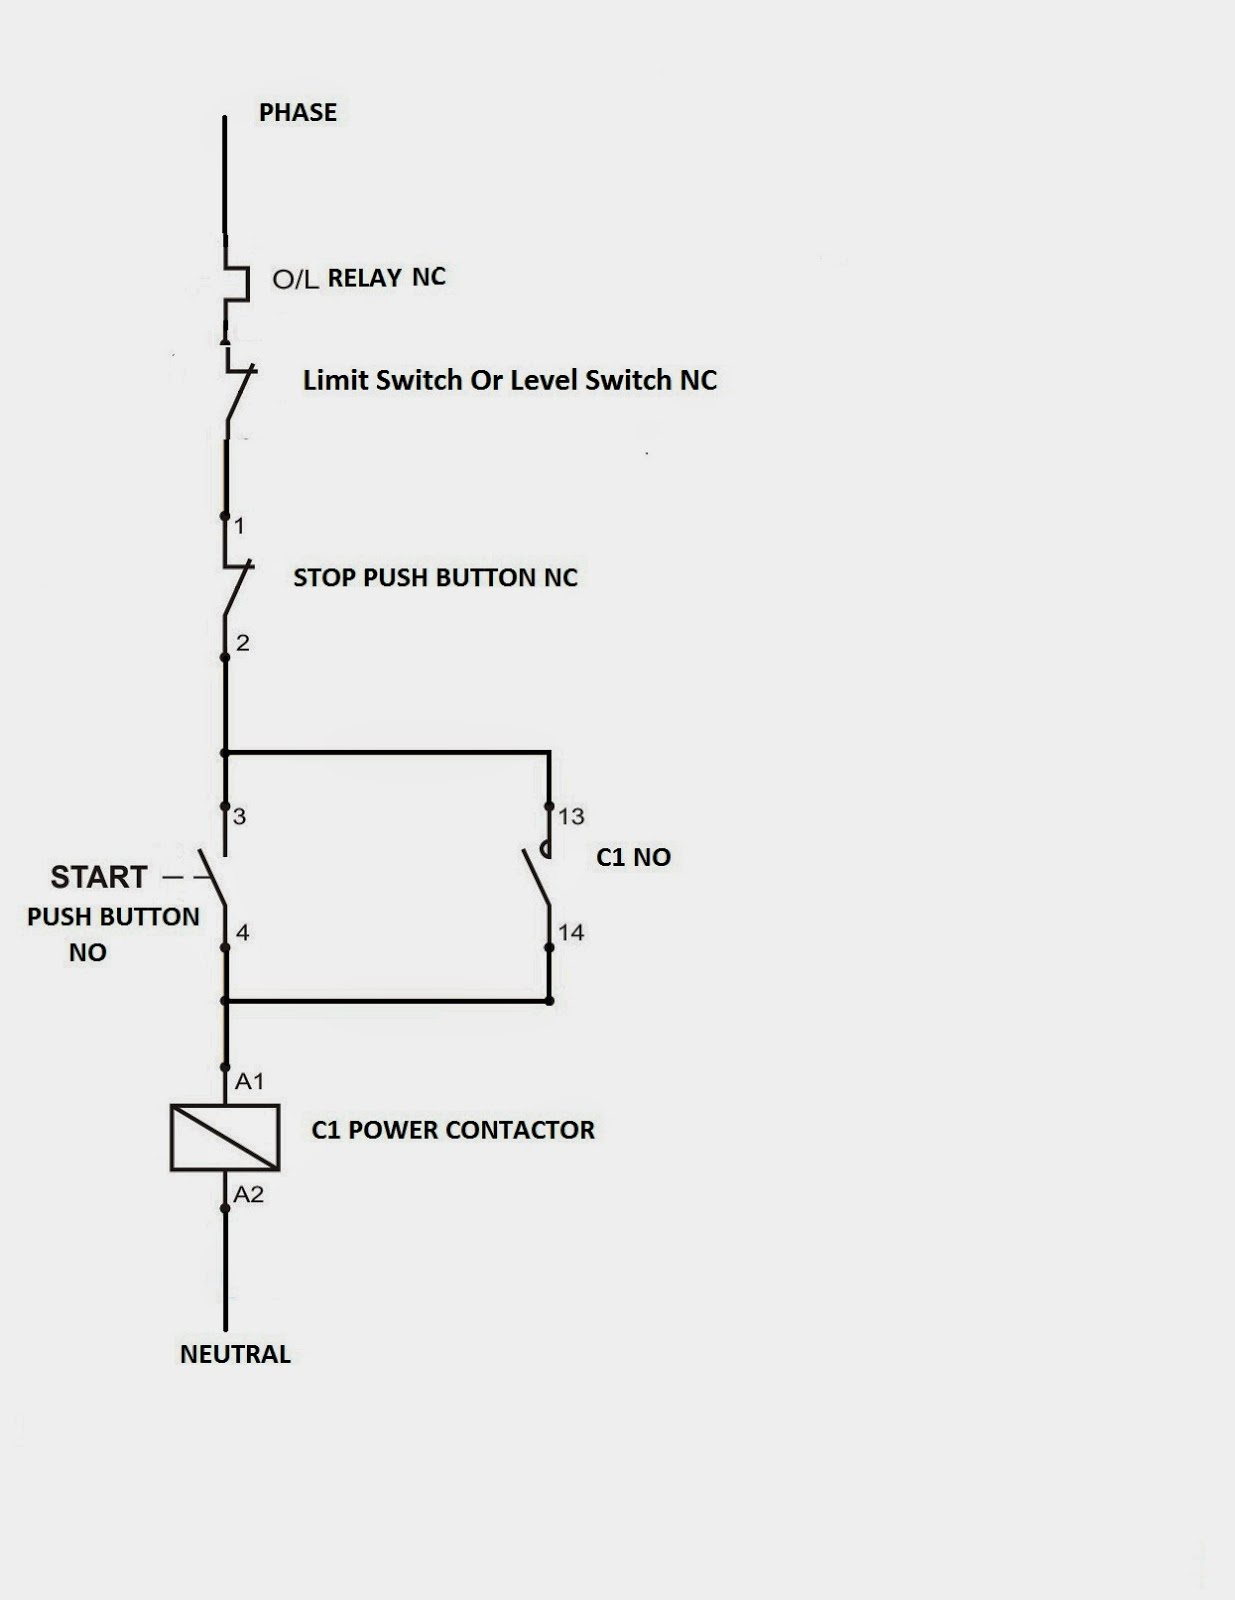 DOL Circuit with Limit Switch; DOL Level Switch Circuit